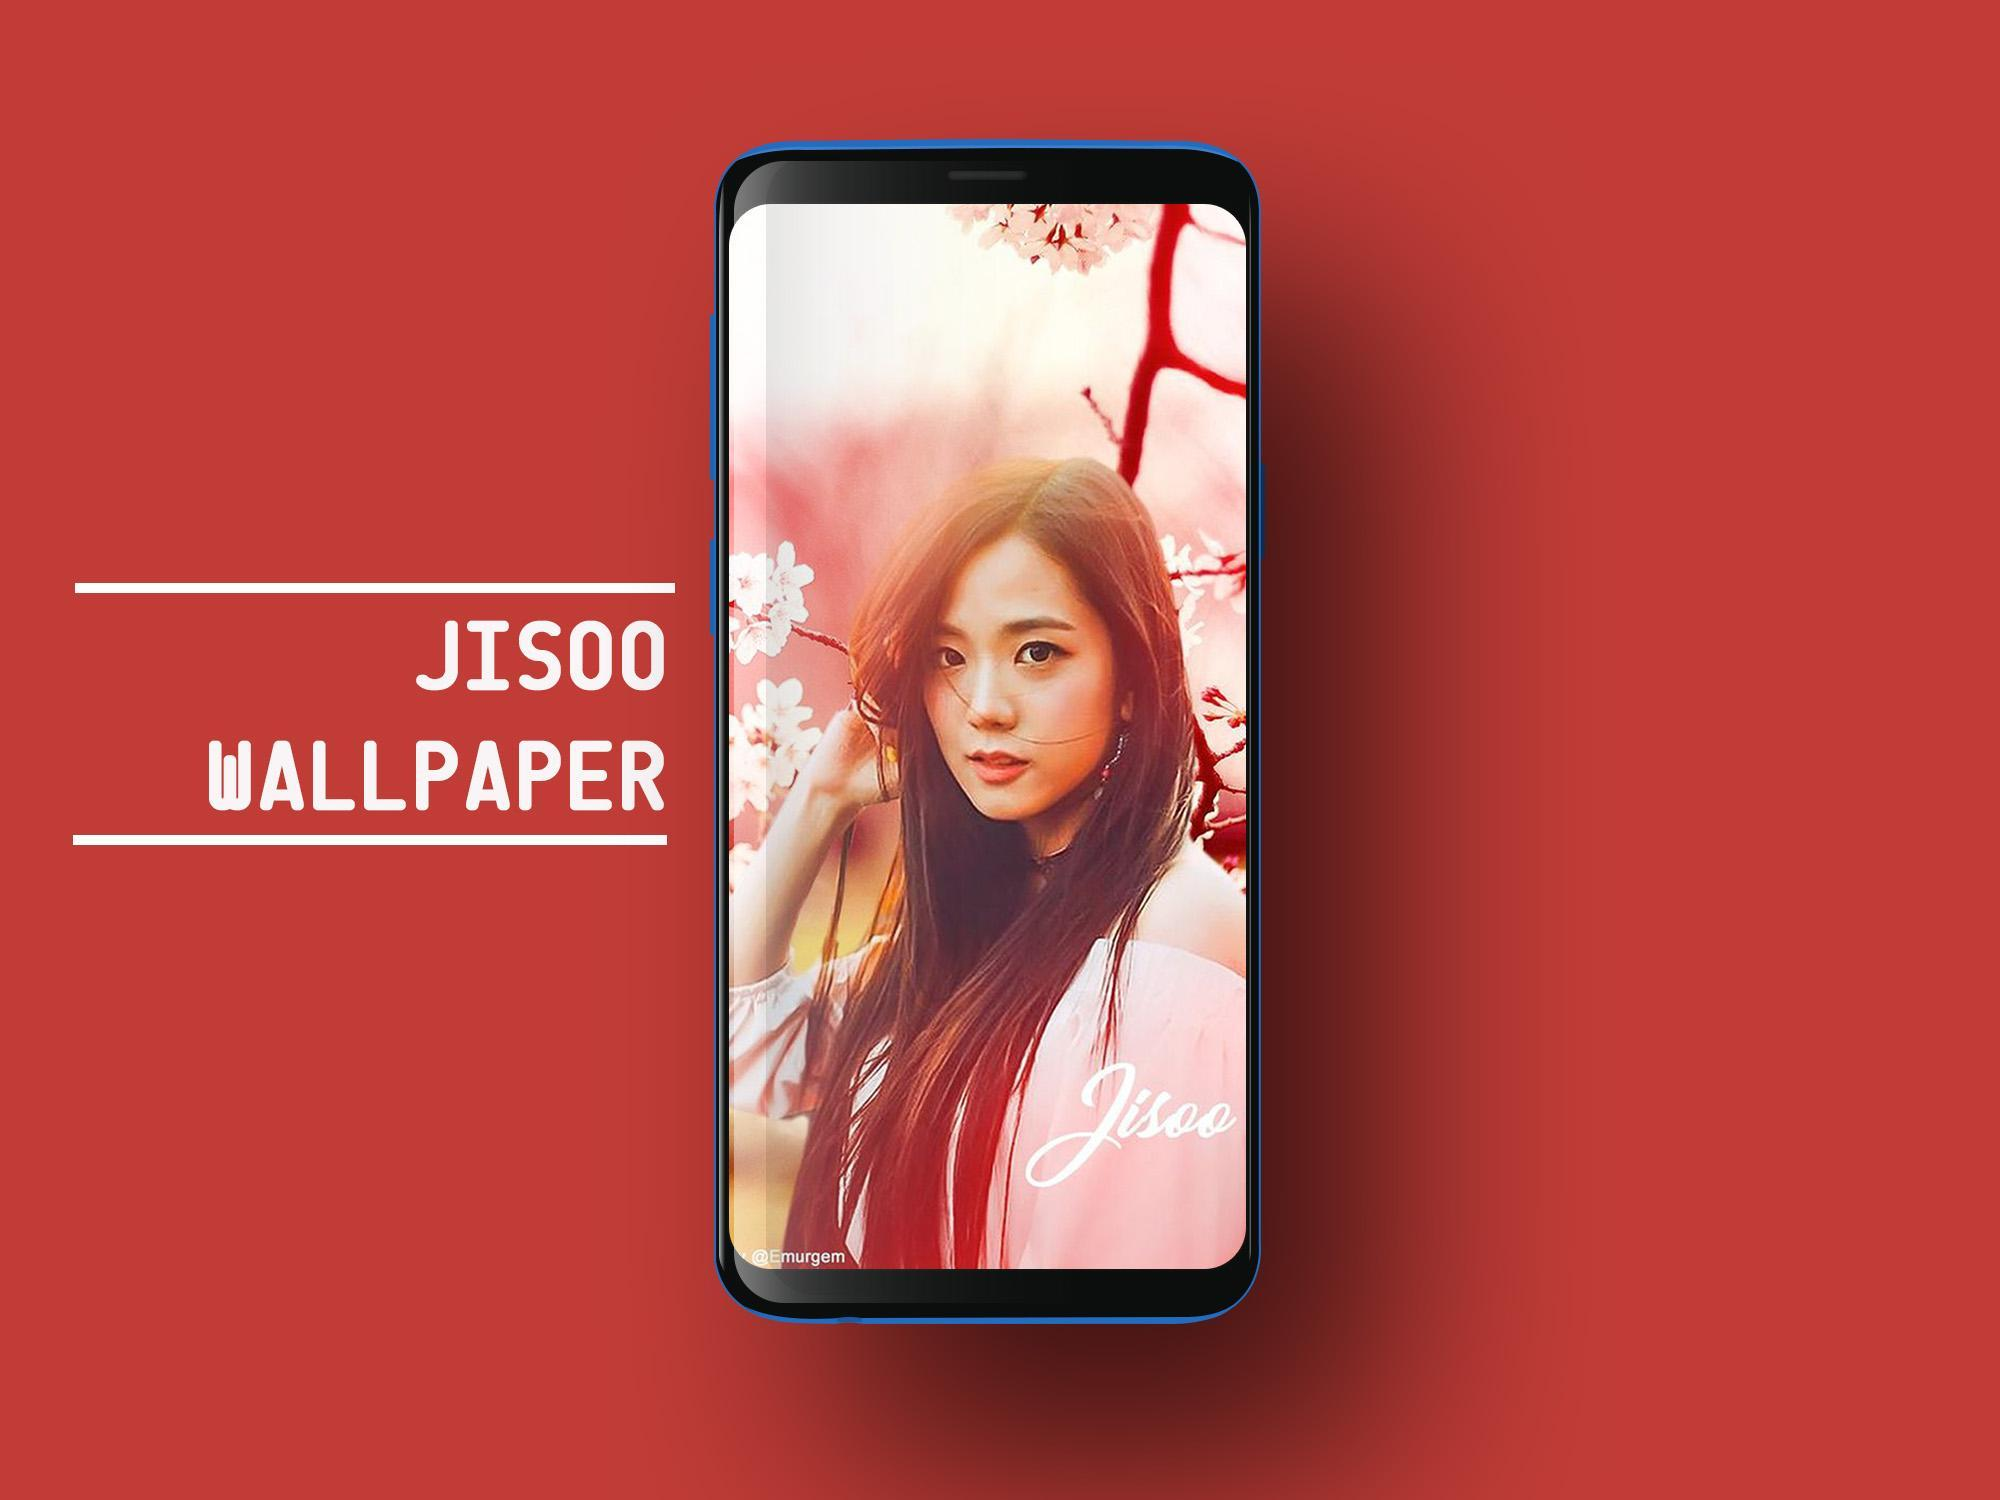 Black Pink Jisoo Wallpapers KOP Fans HD for Android   APK Download 2000x1500